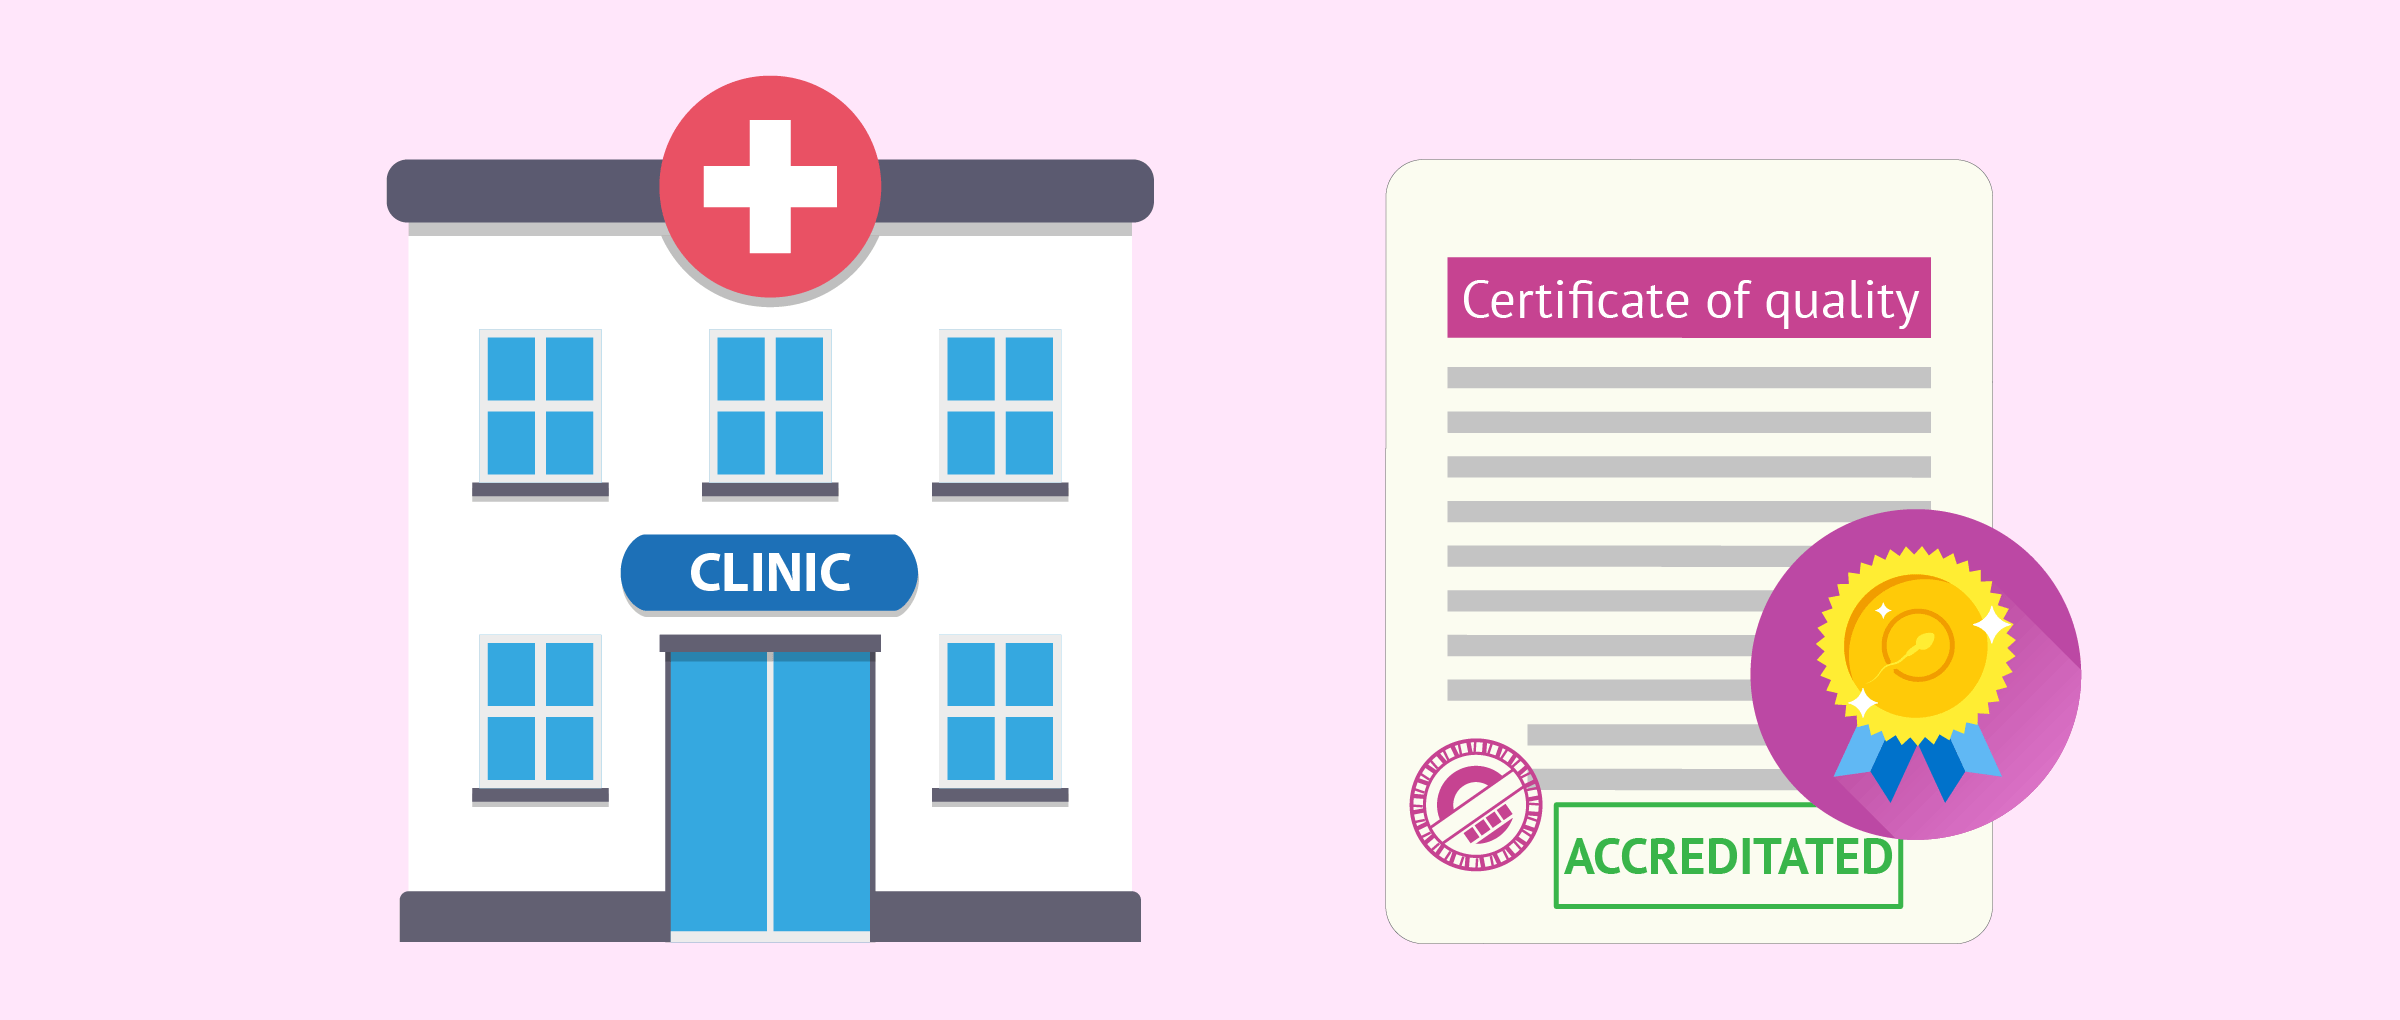 How to Choose a Surrogacy Clinic - 7 Tips & Facts